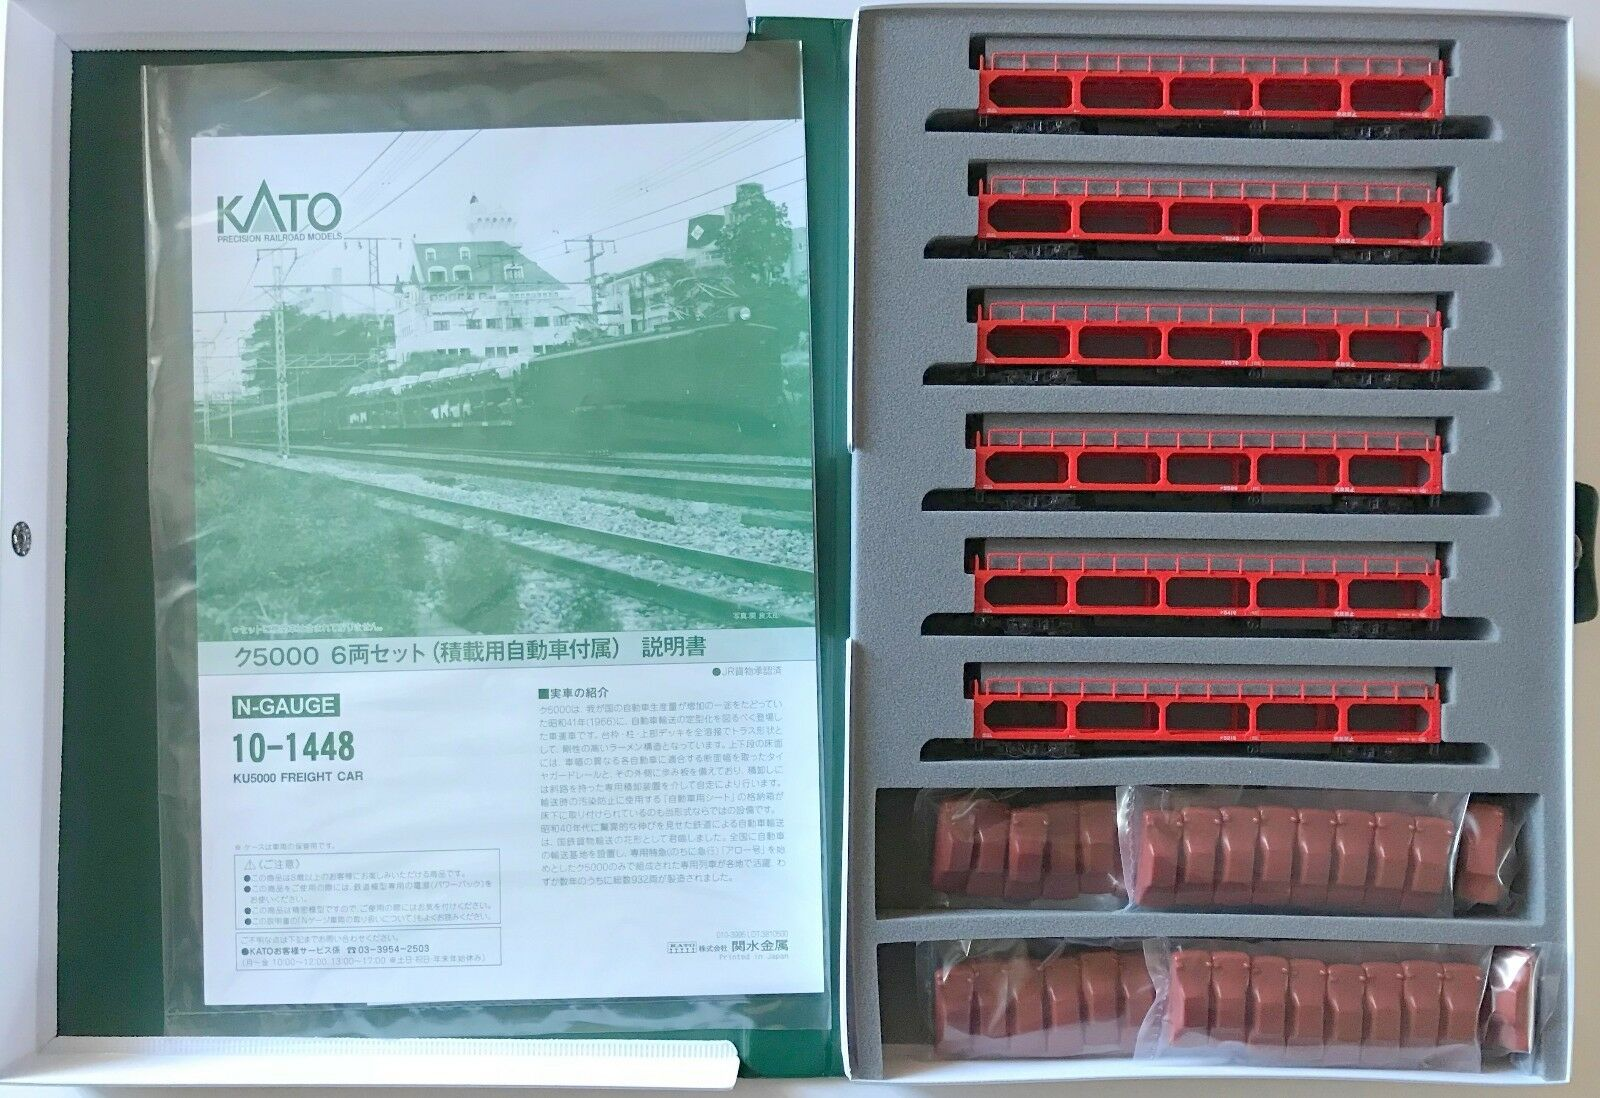 Kato N Scale 10-1448 Freight Car Ku 5000 Car Cover for Loading Included